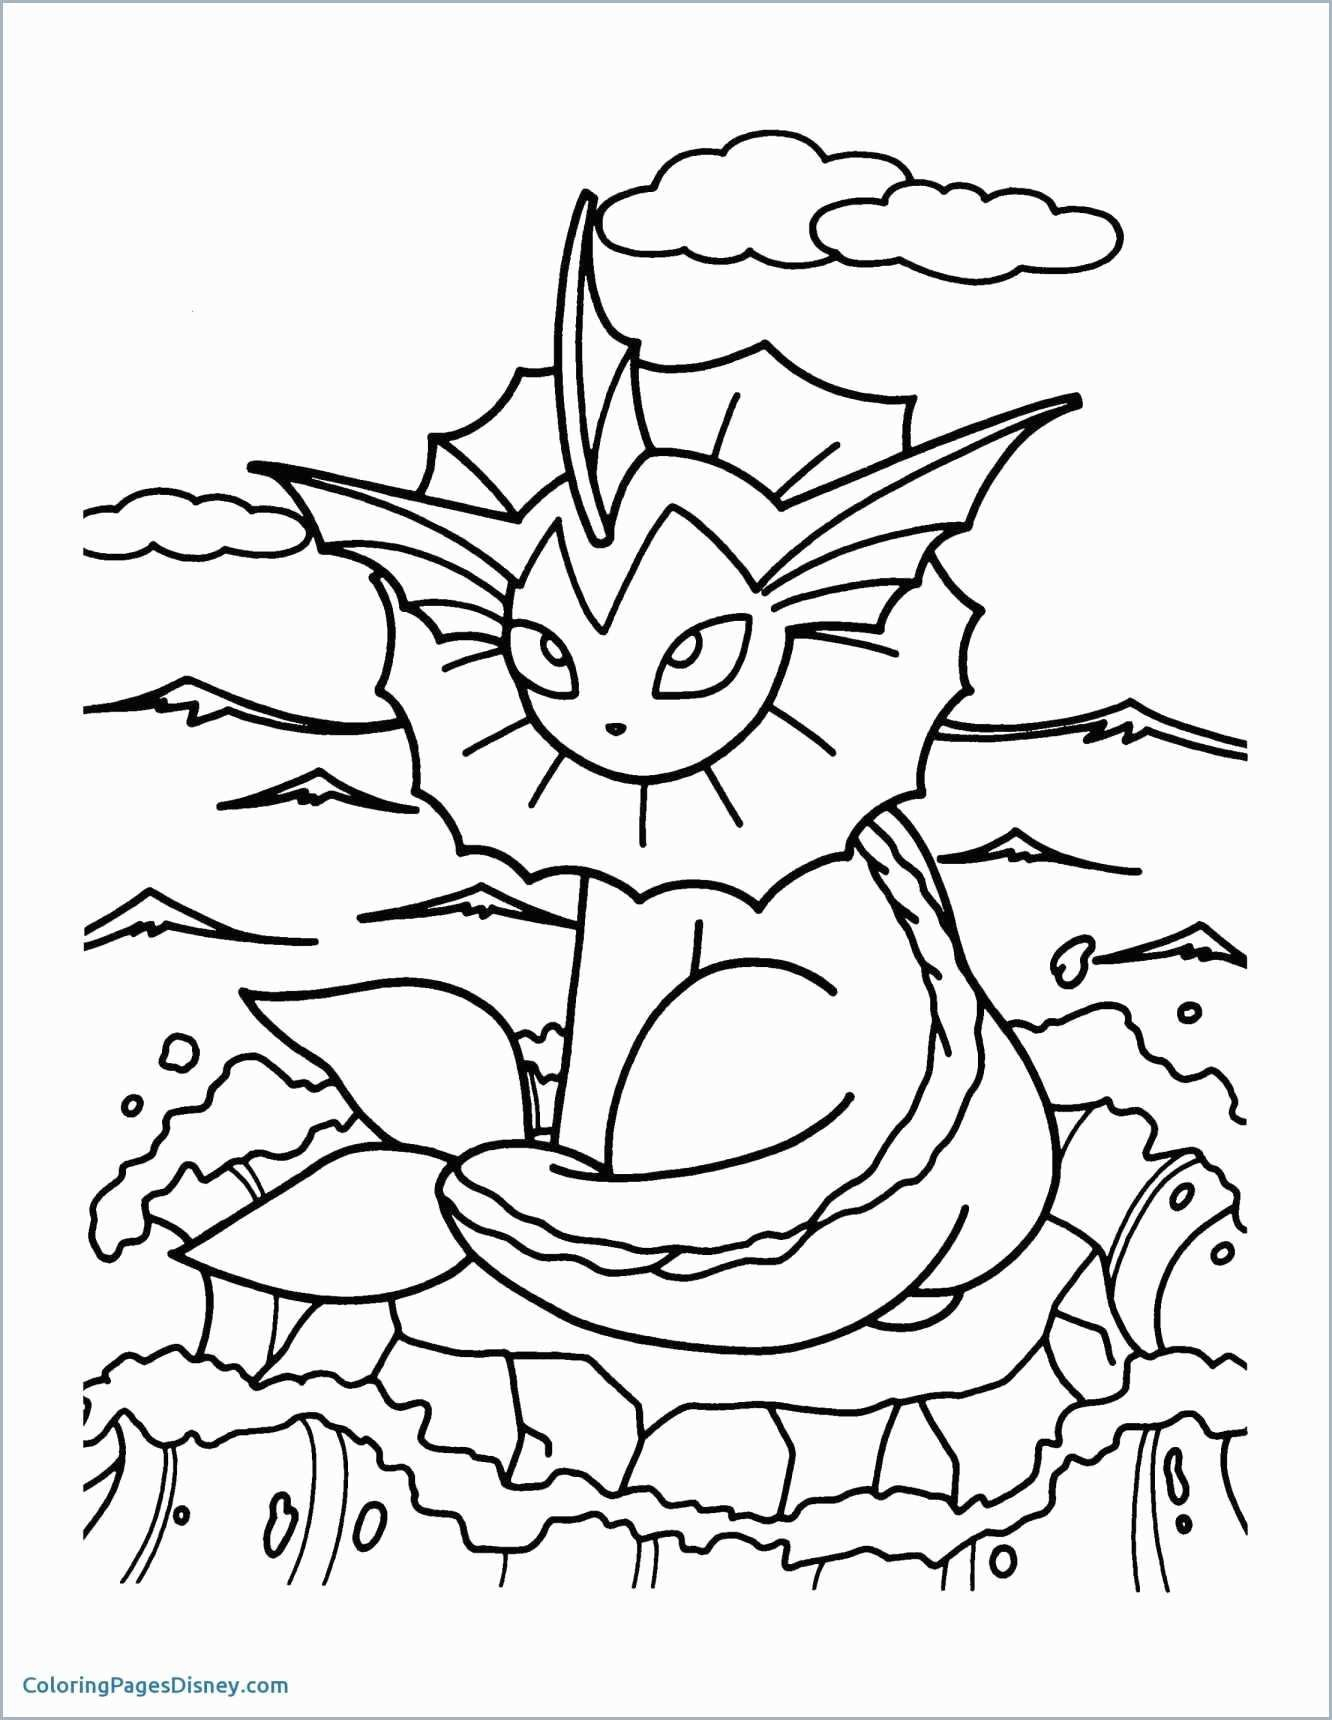 Little Mermaid Coloring Pages My Little Mermaid Coloring Pages Best Of Mermaid Coloring Pages